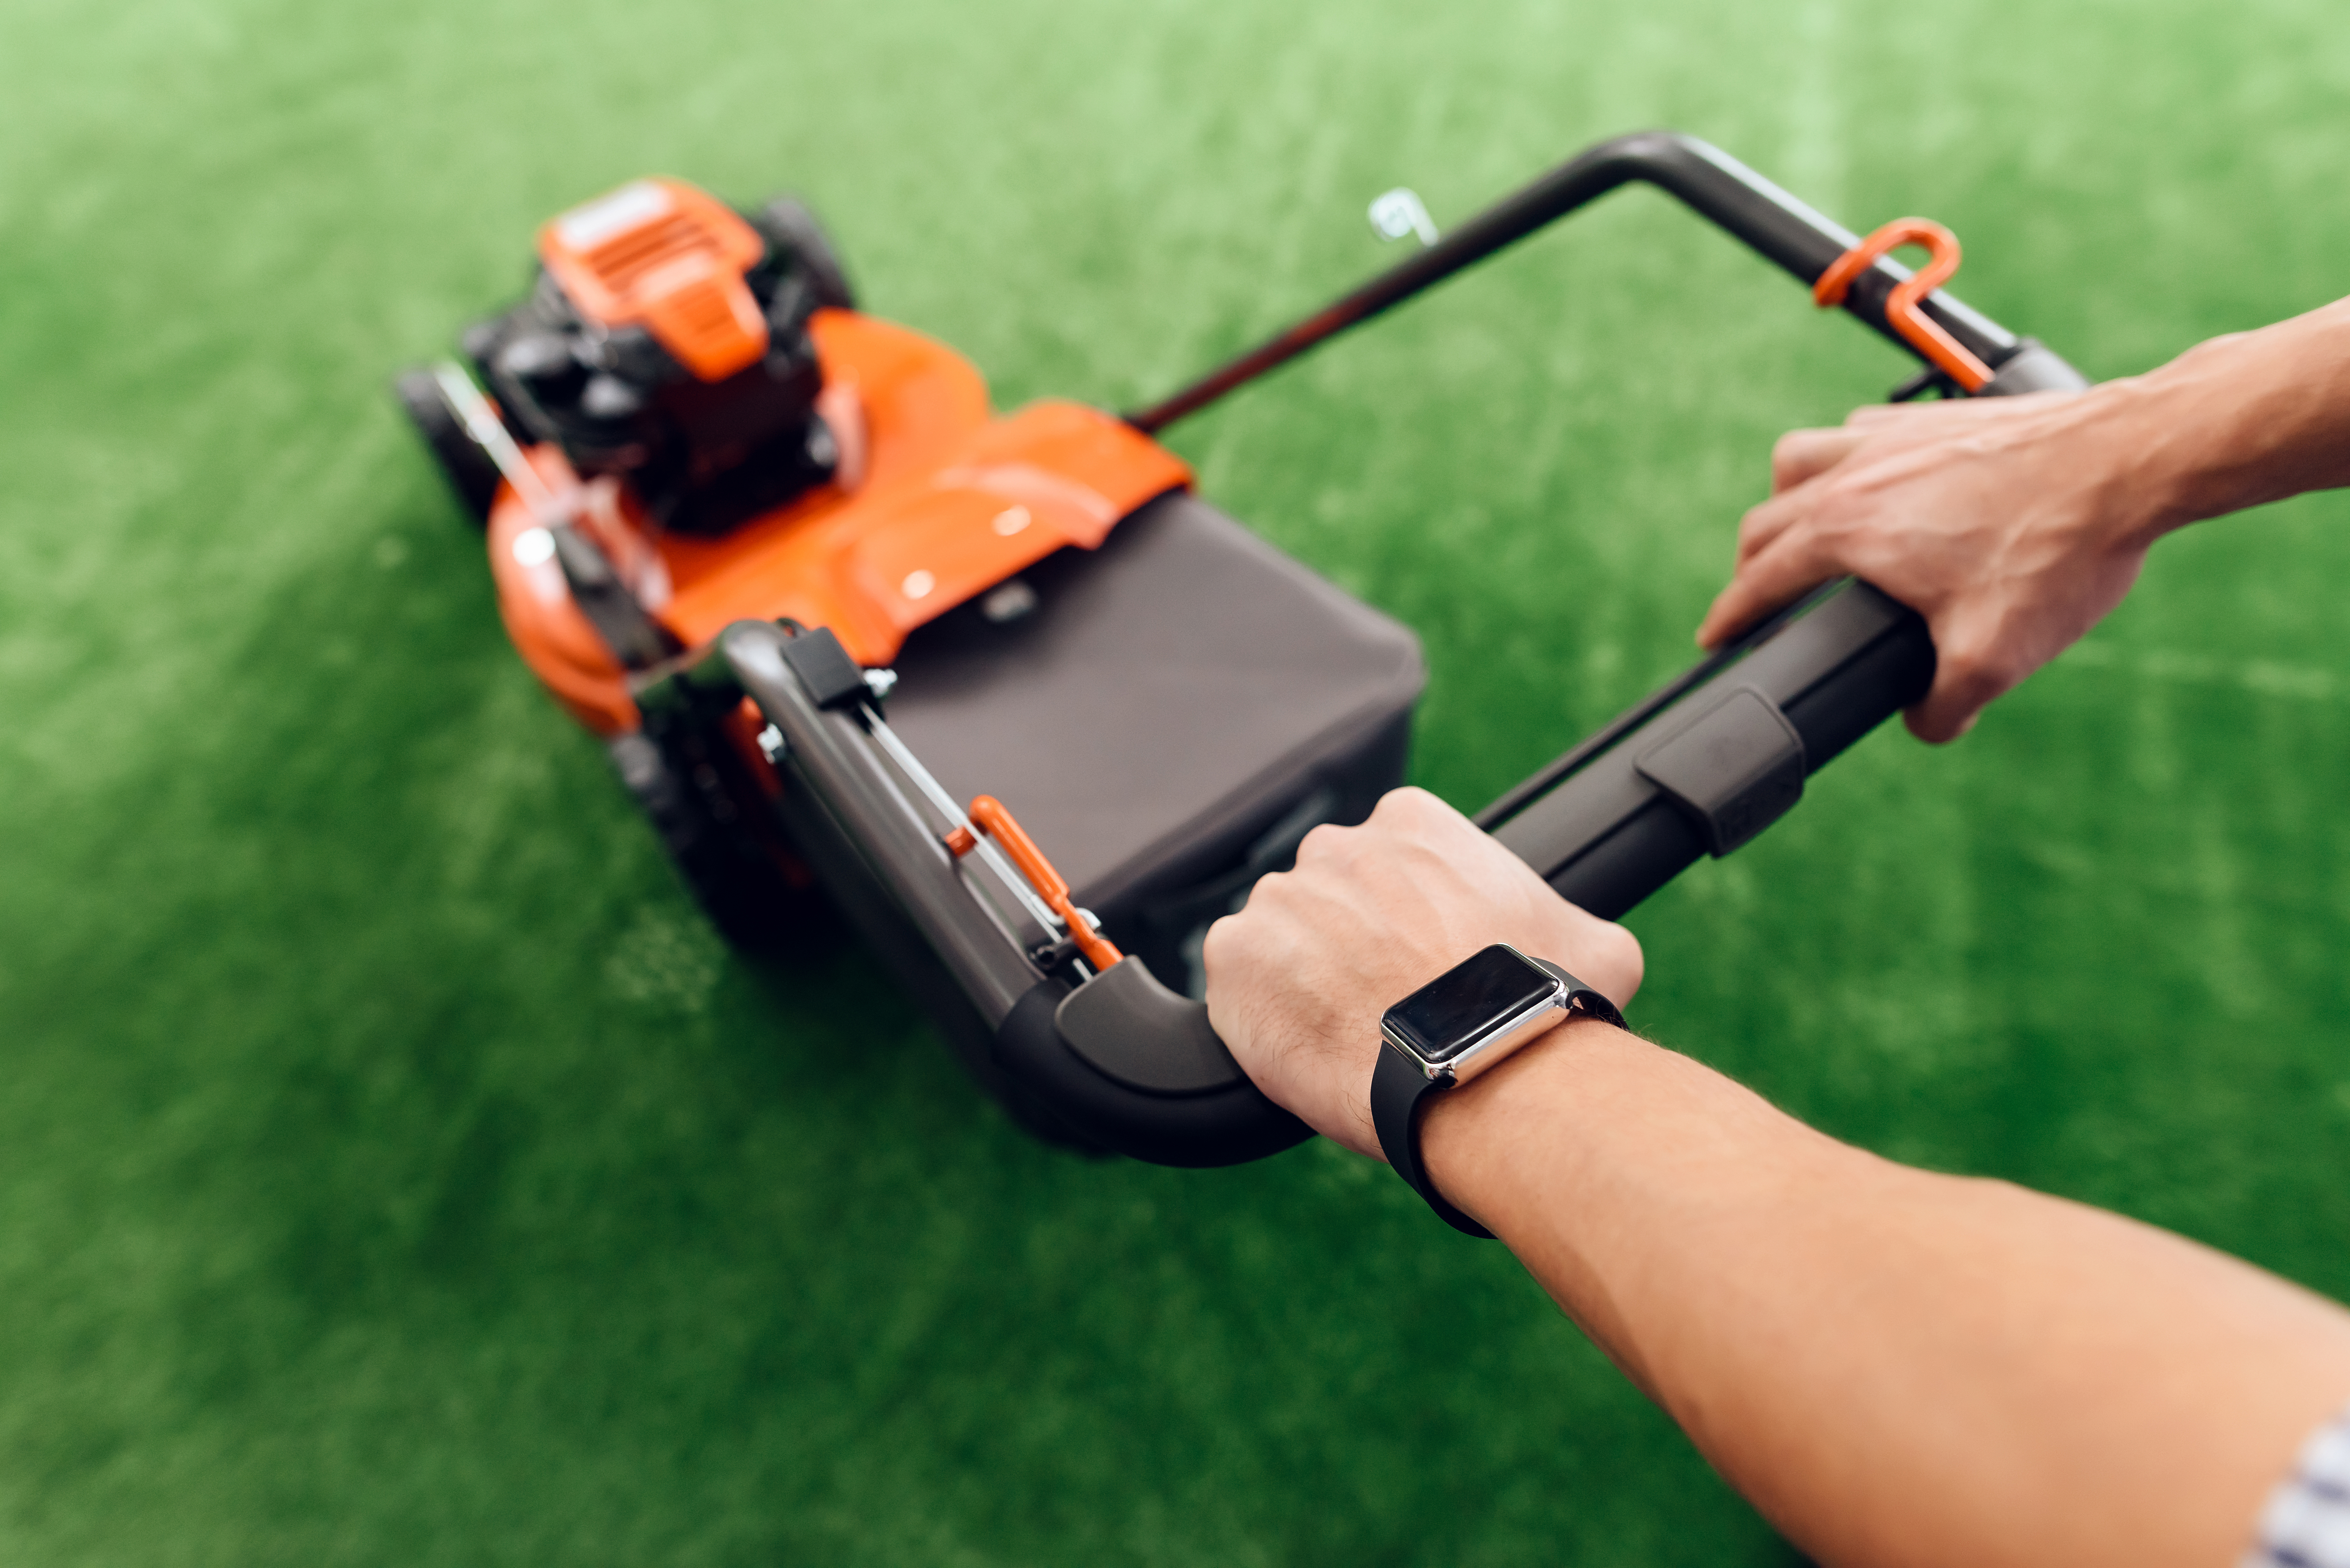 How to Test a Mower Starter | Home Guides | SF Gate